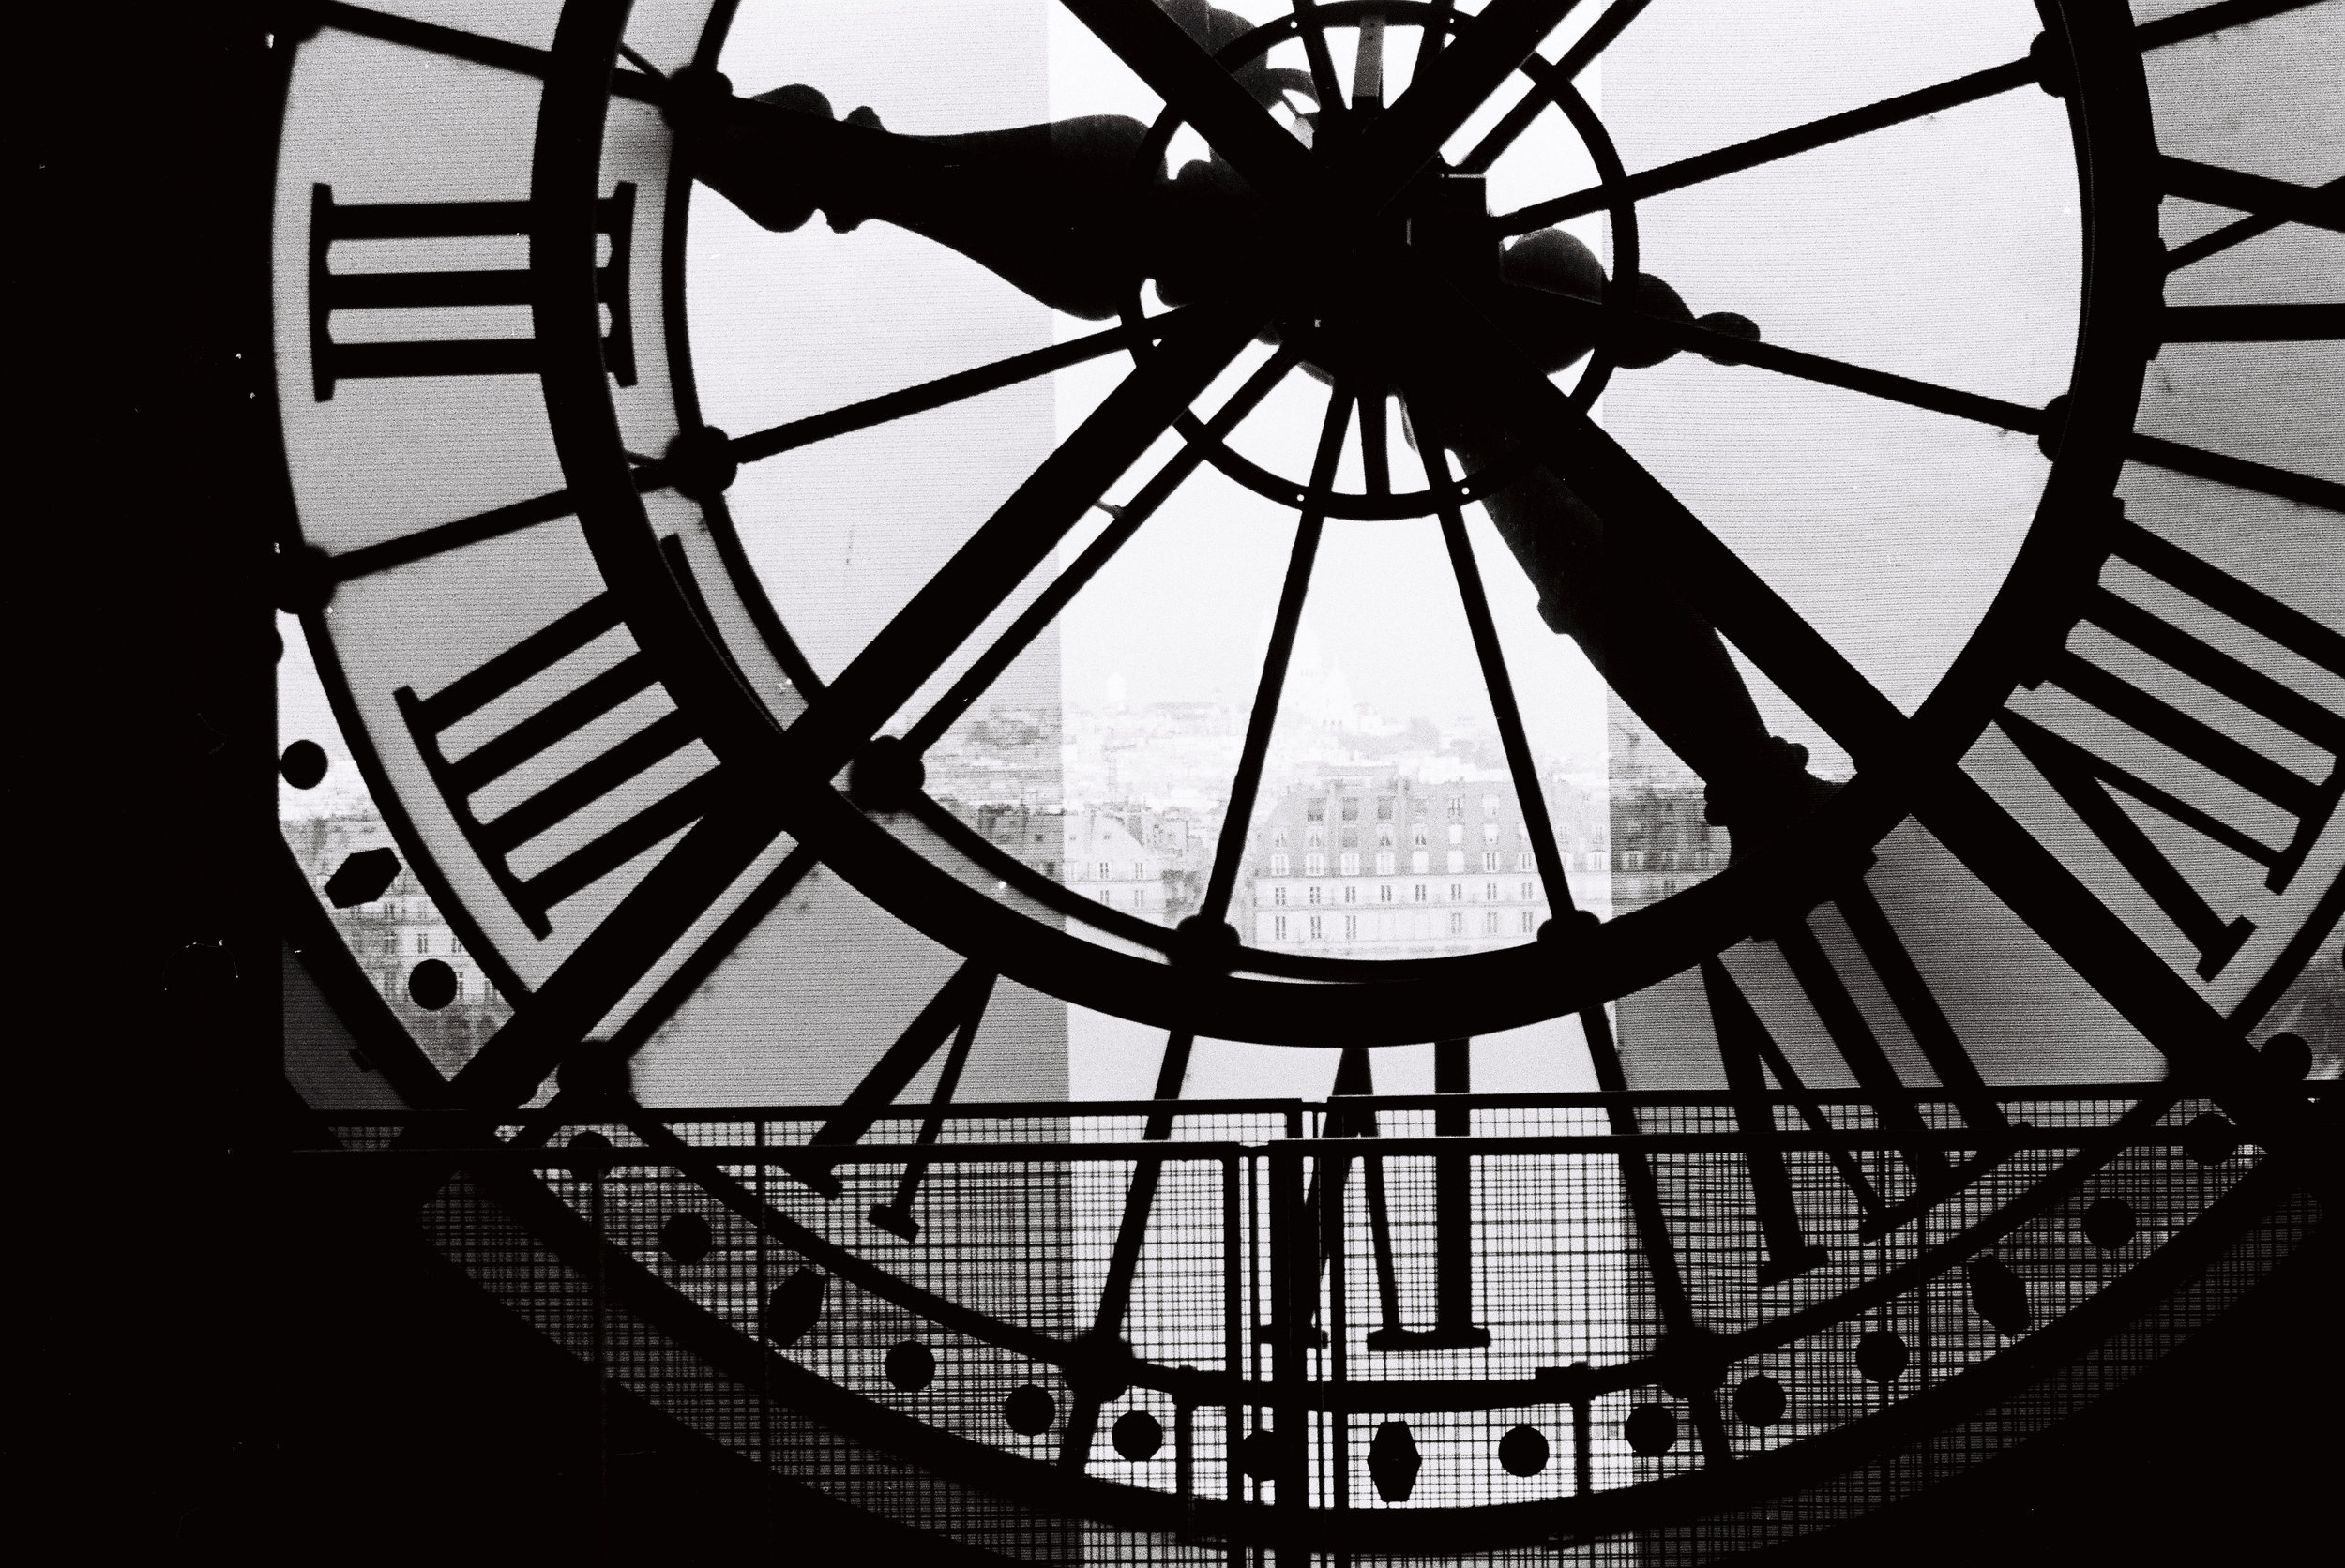 paris black and white photo